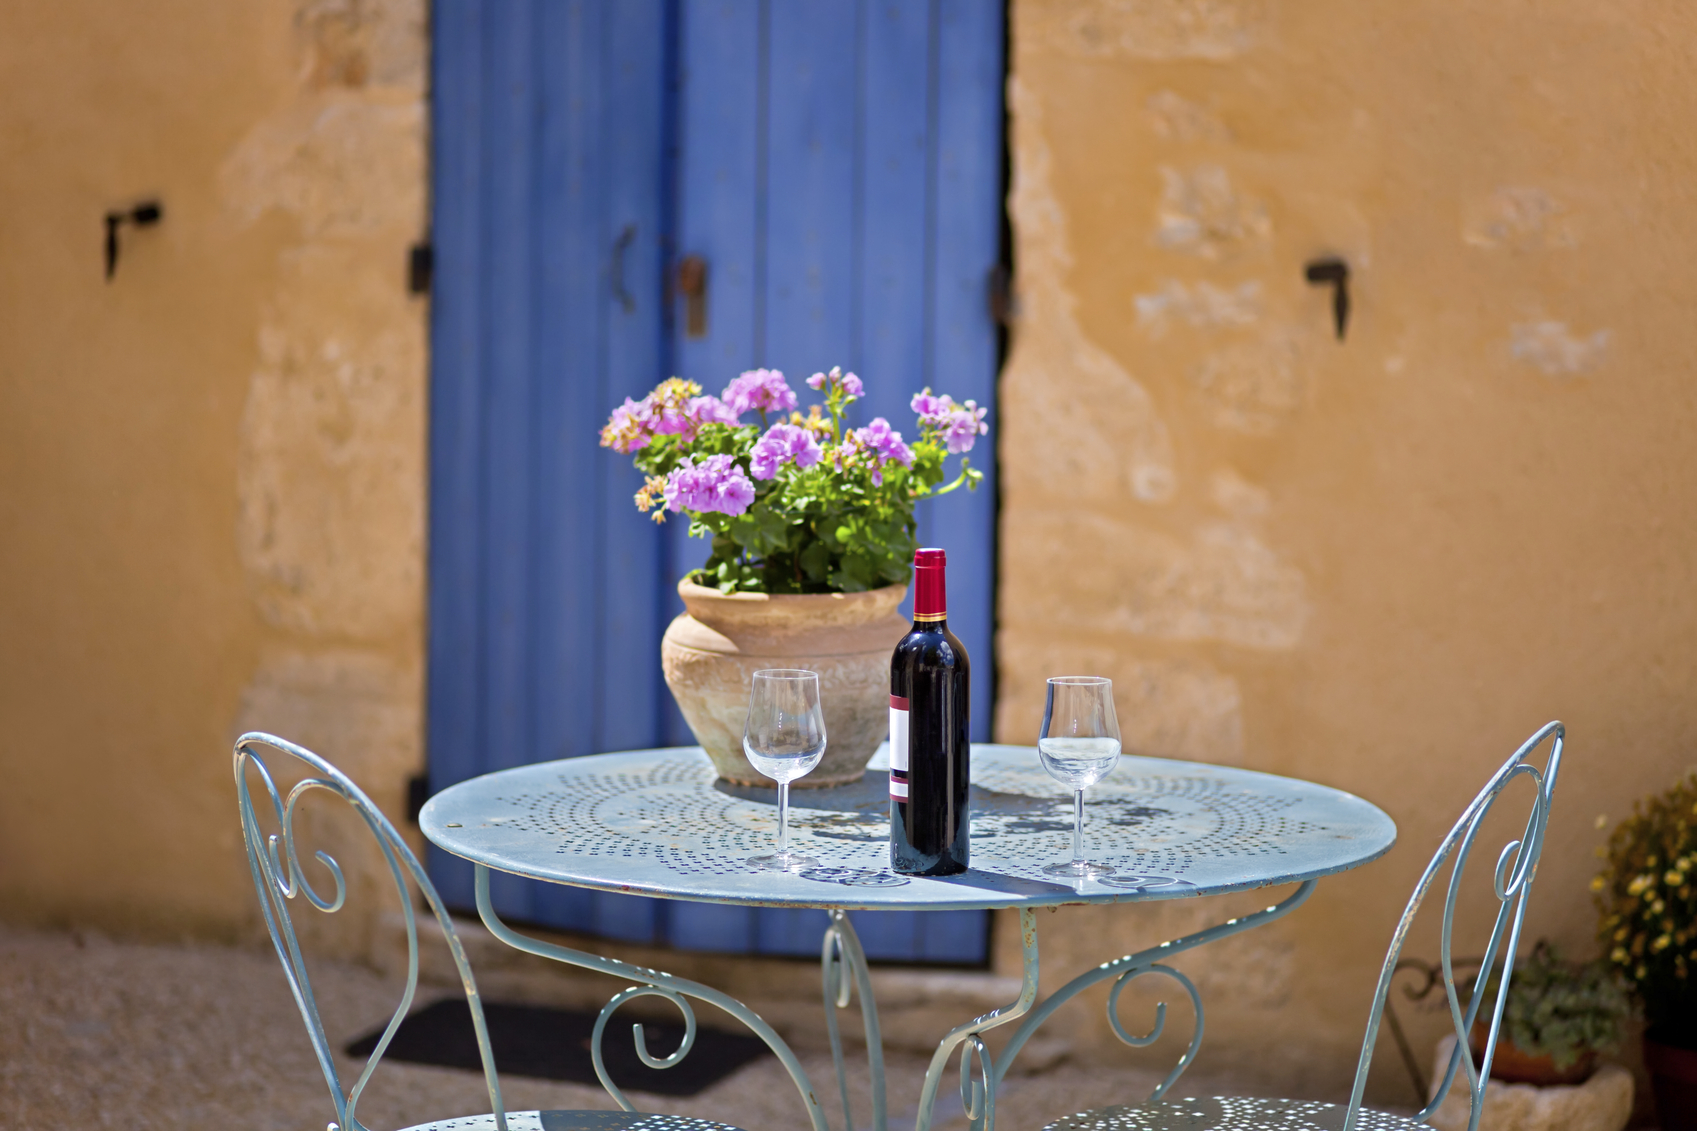 Table for two set with red wine. Provence, France.